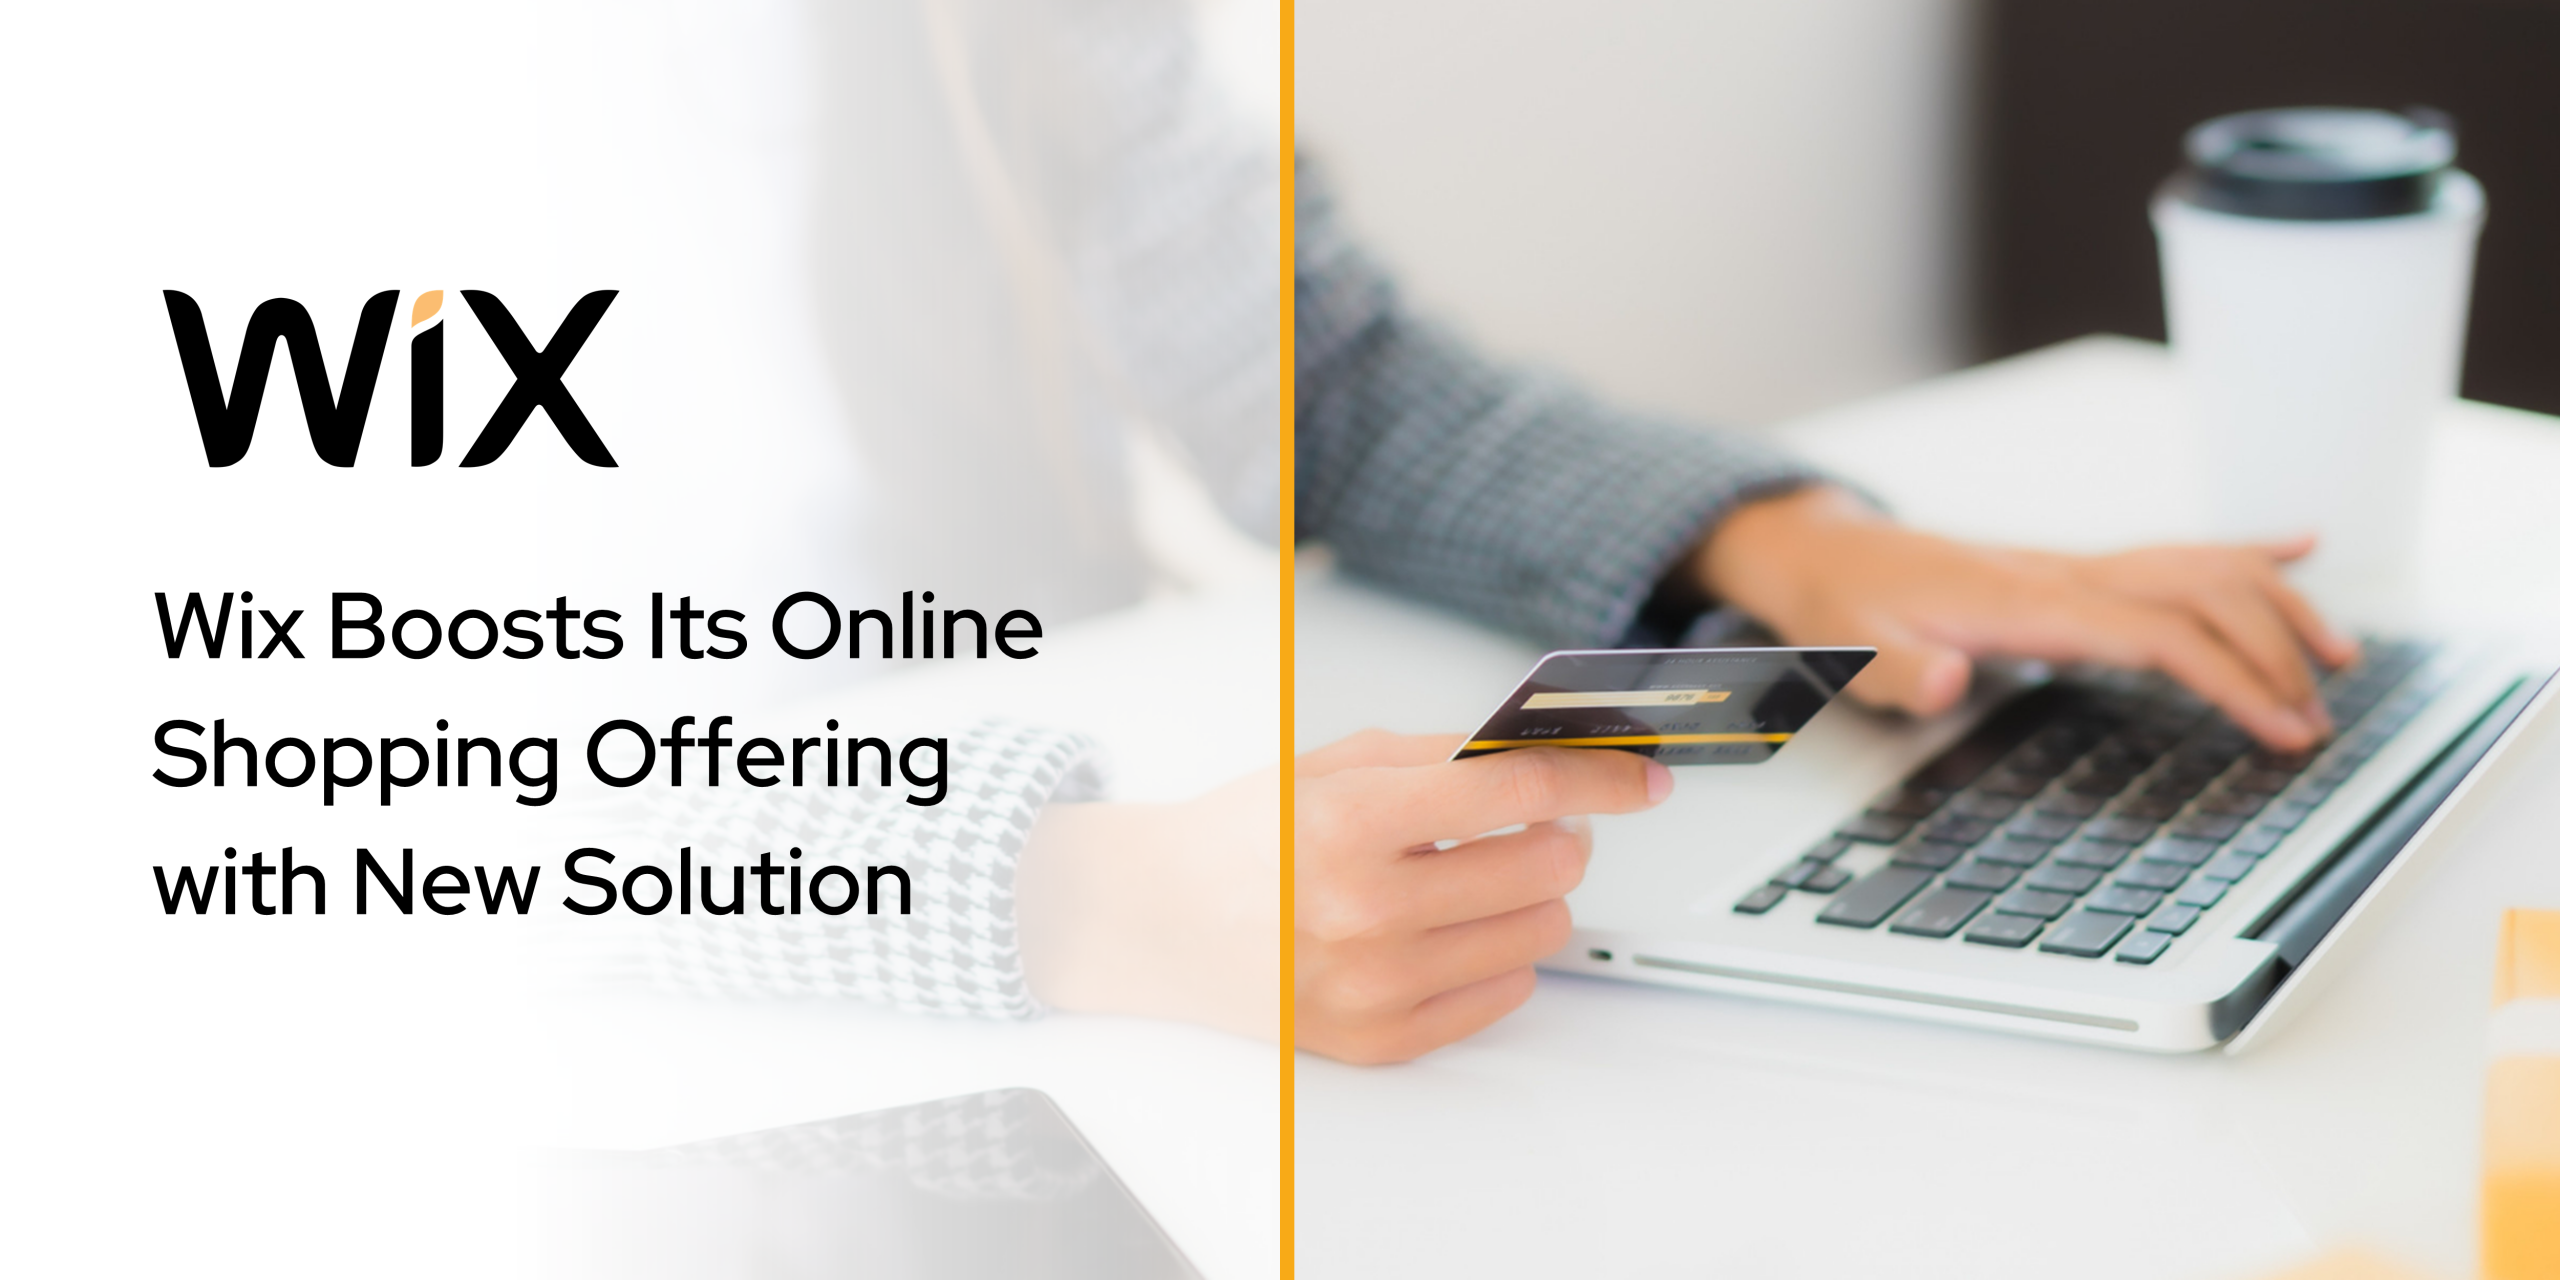 Wix Boosts Its Online Shopping Offering with New Solution